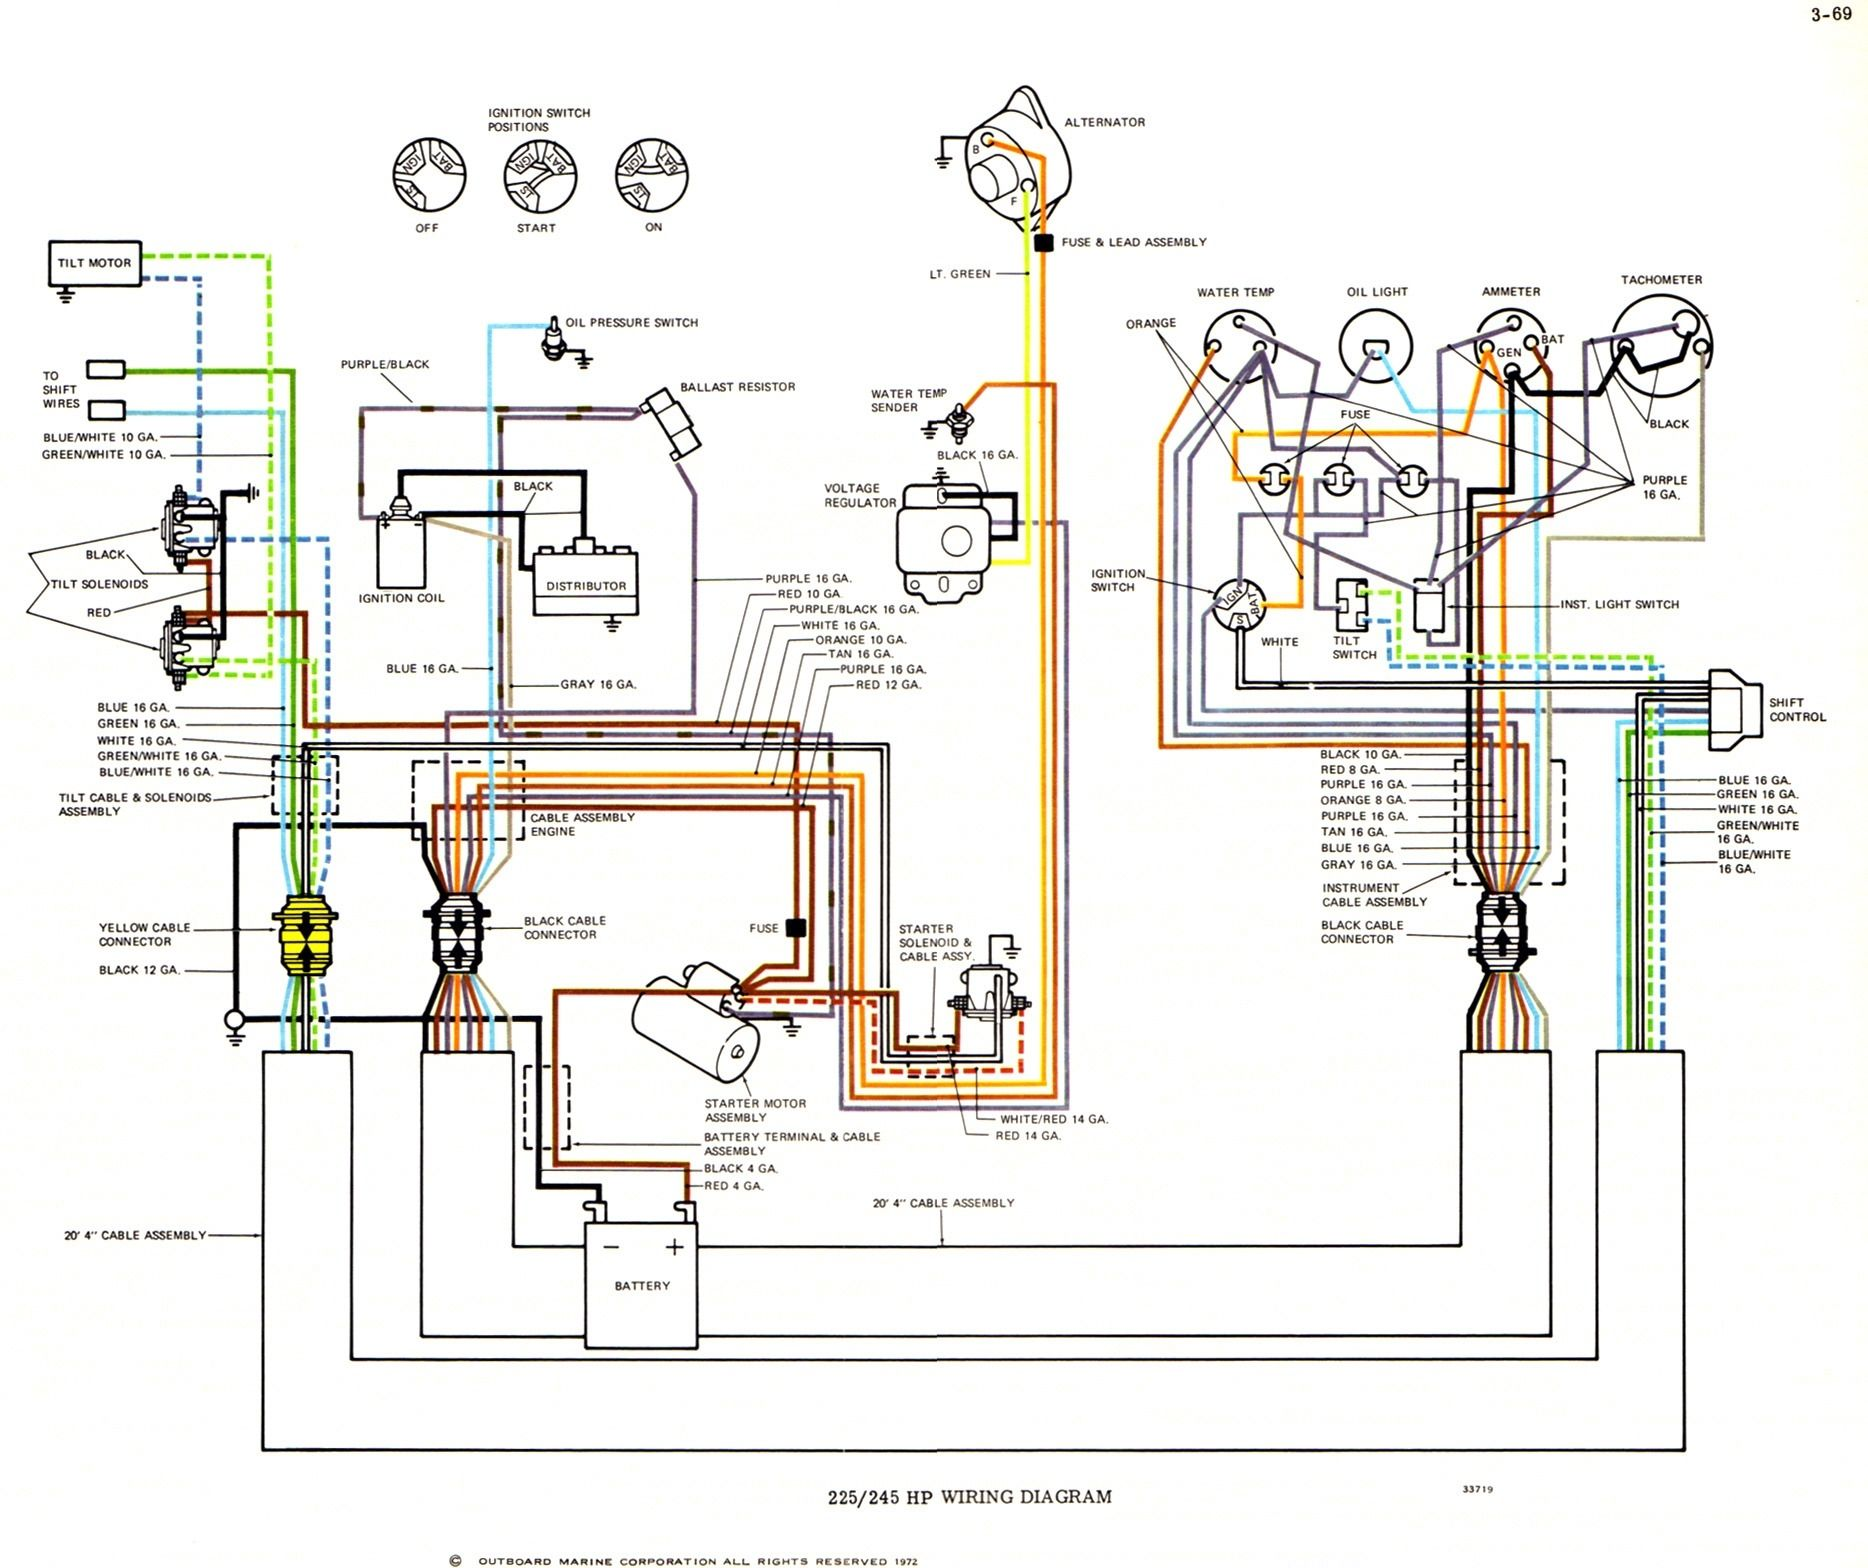 Yamaha Outboard Electrical Wiring Diagram Wiringdiagram Org Electrical Wiring Diagram Boat Wiring Electrical Wiring